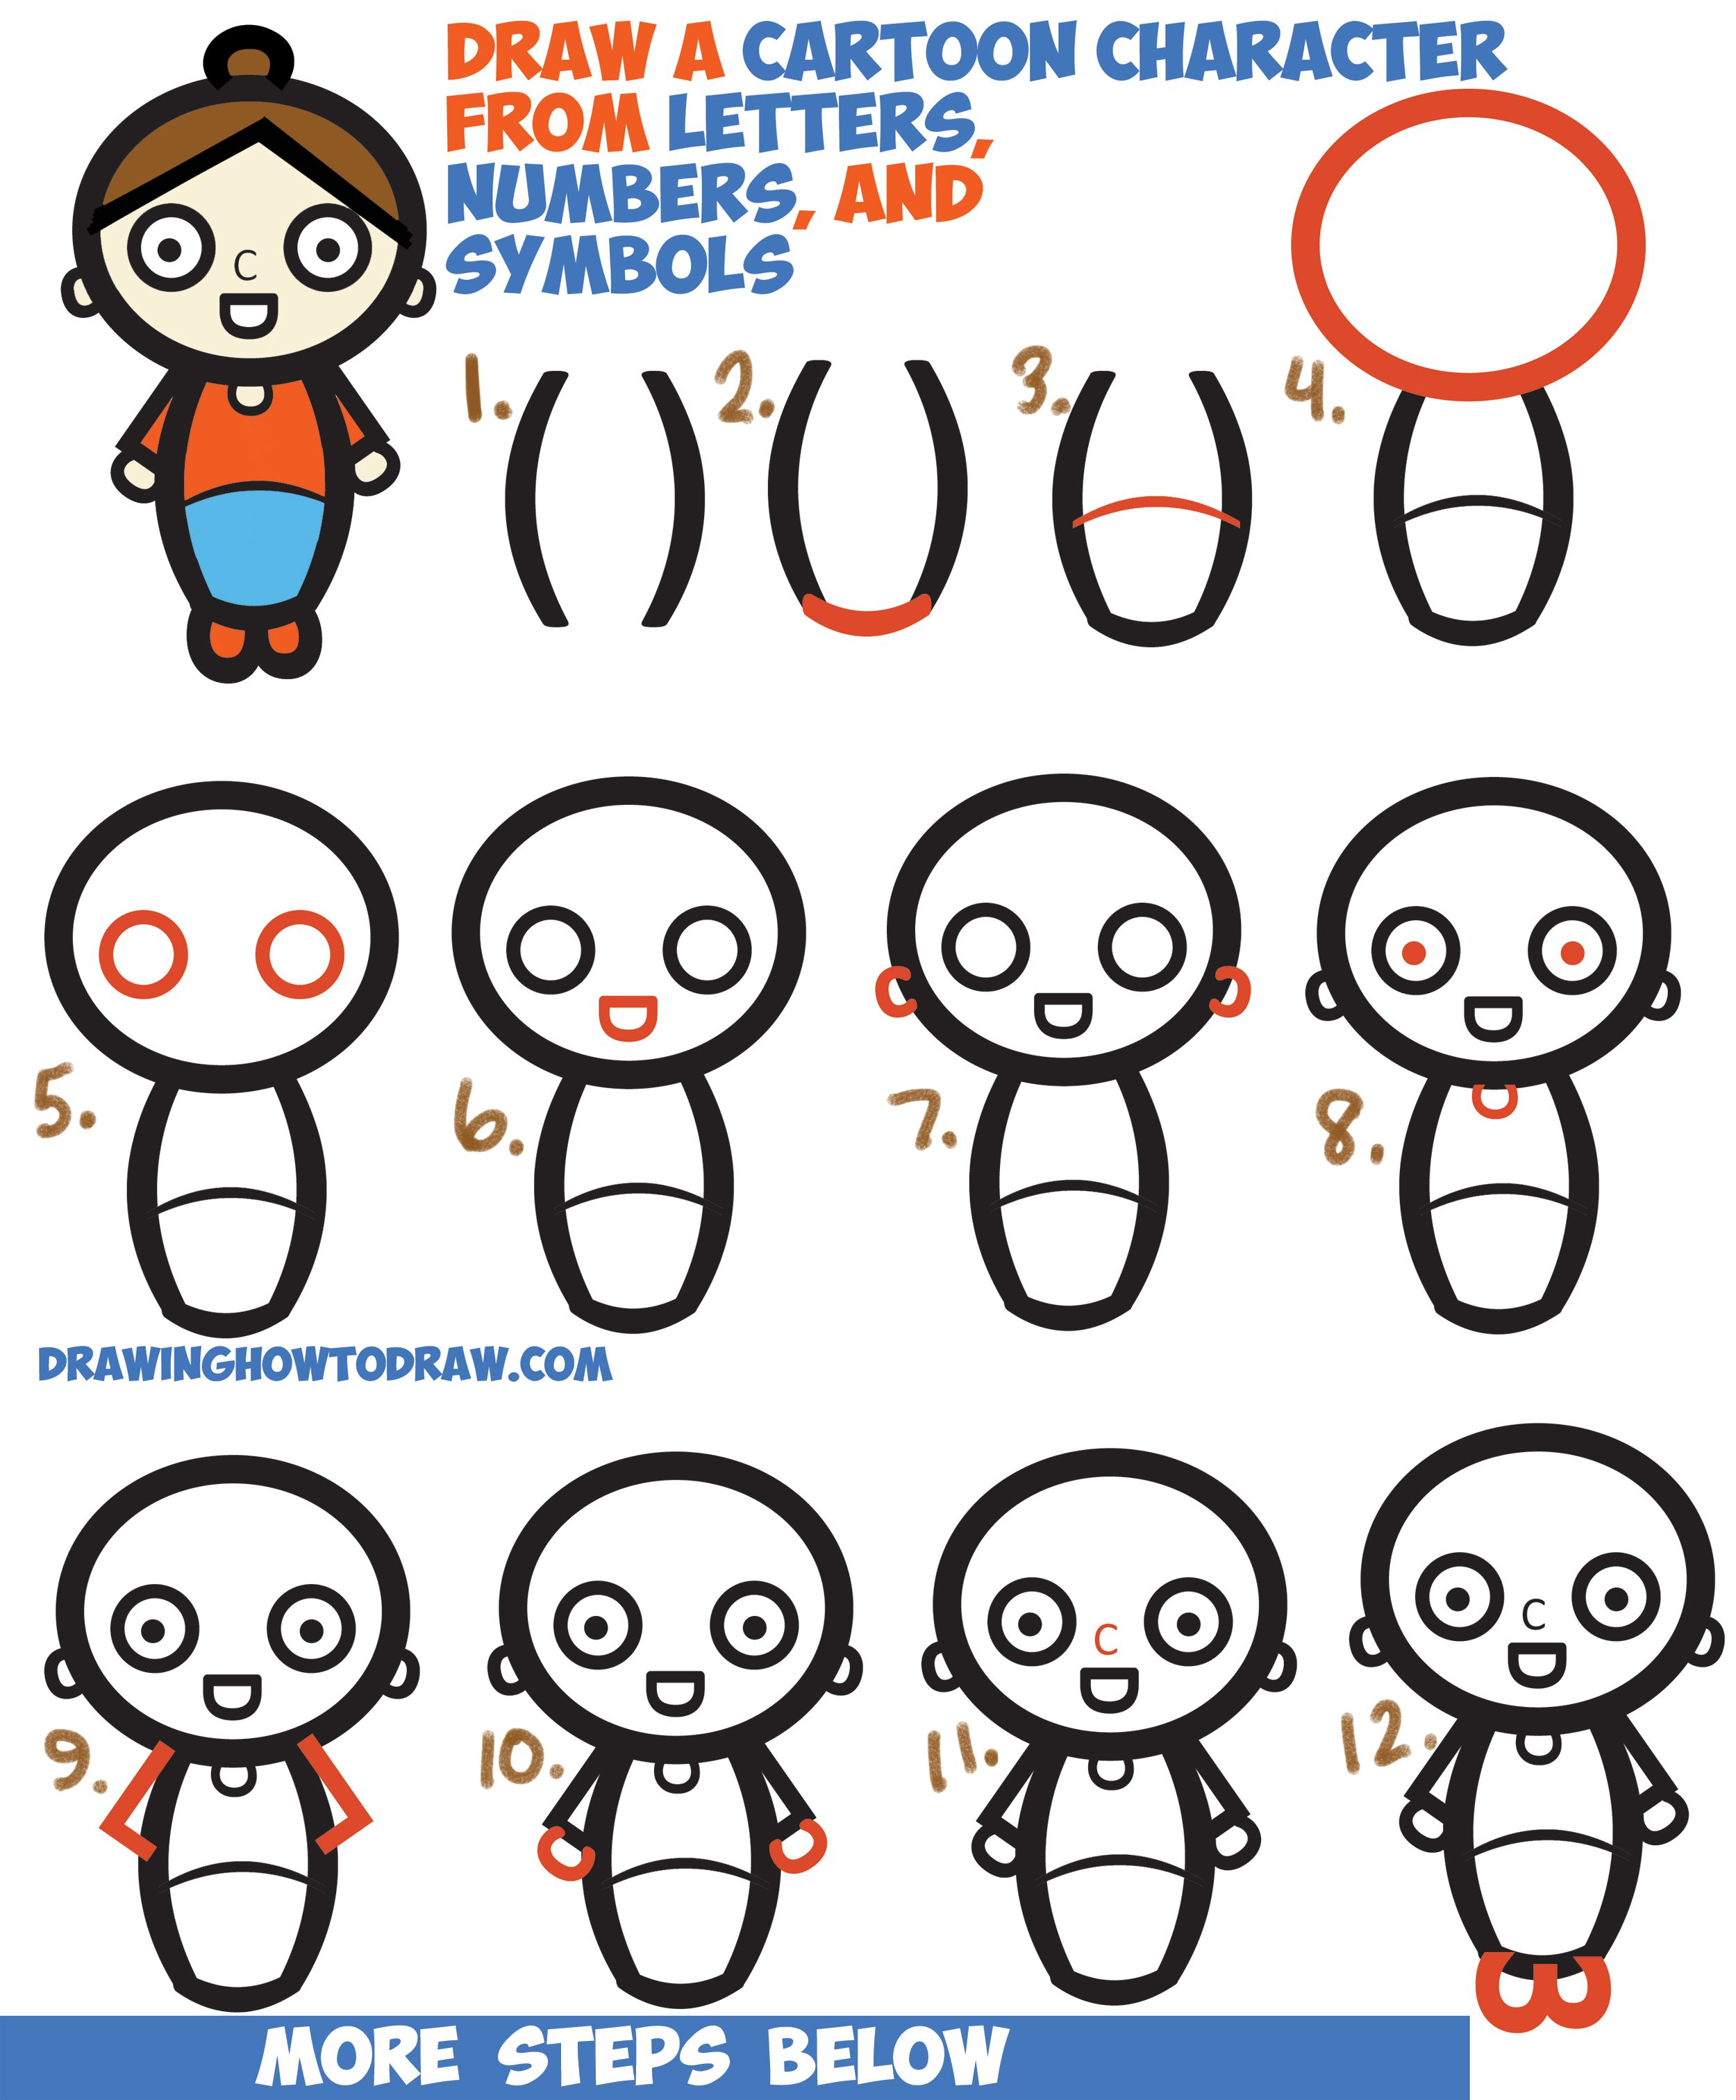 How To Draw A Cartoon Woman Character From Letters Numbers Symbols Easy Step By Step Drawing Tutorial For Kids How To Draw Step By Step Drawing Tutorials Cartoon Drawings